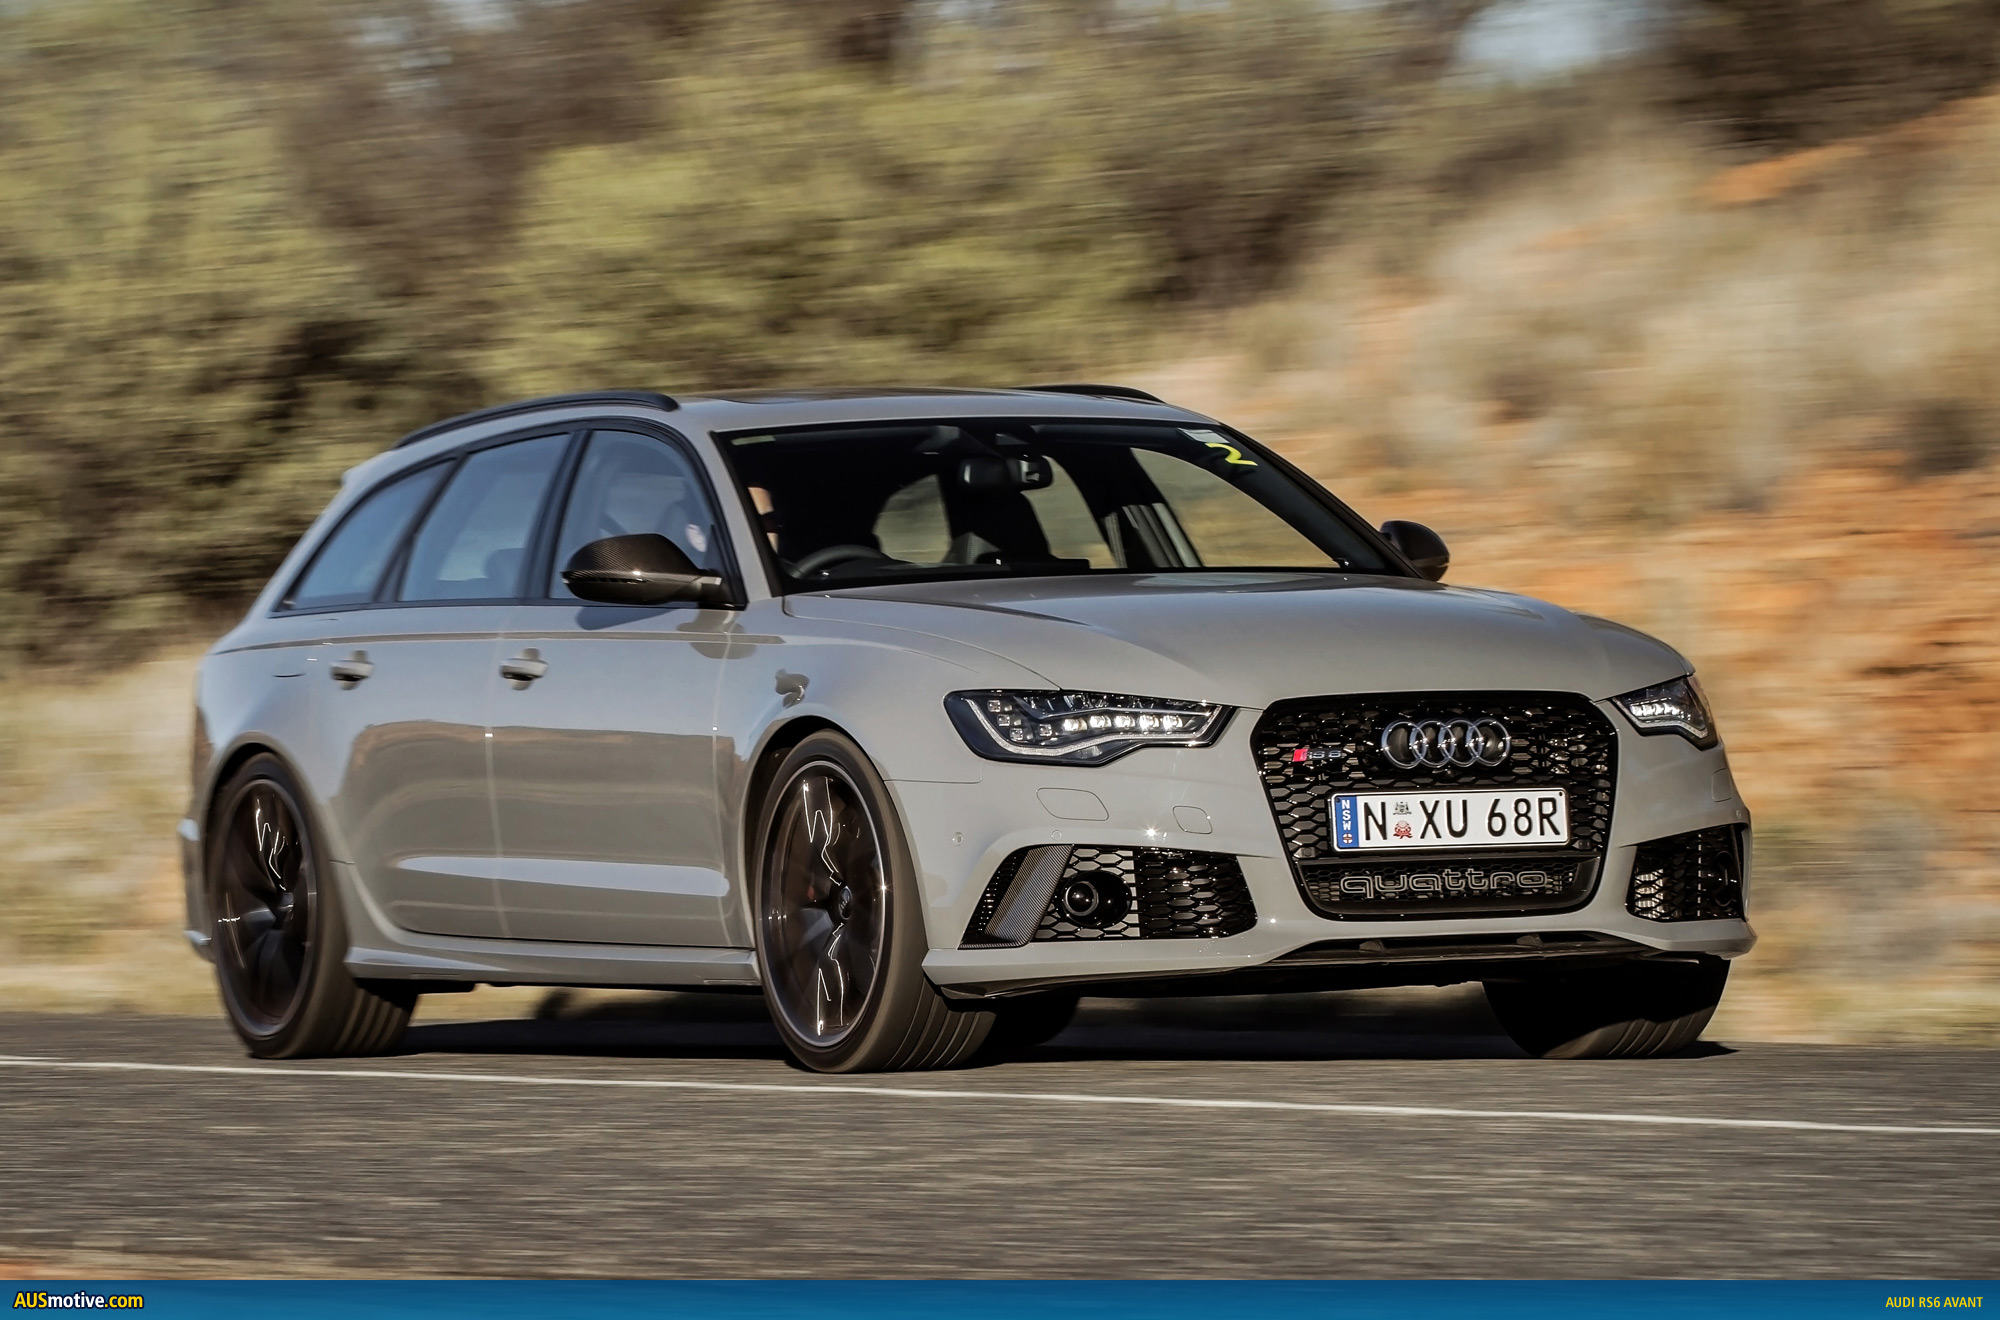 audi rs6 pictures #11